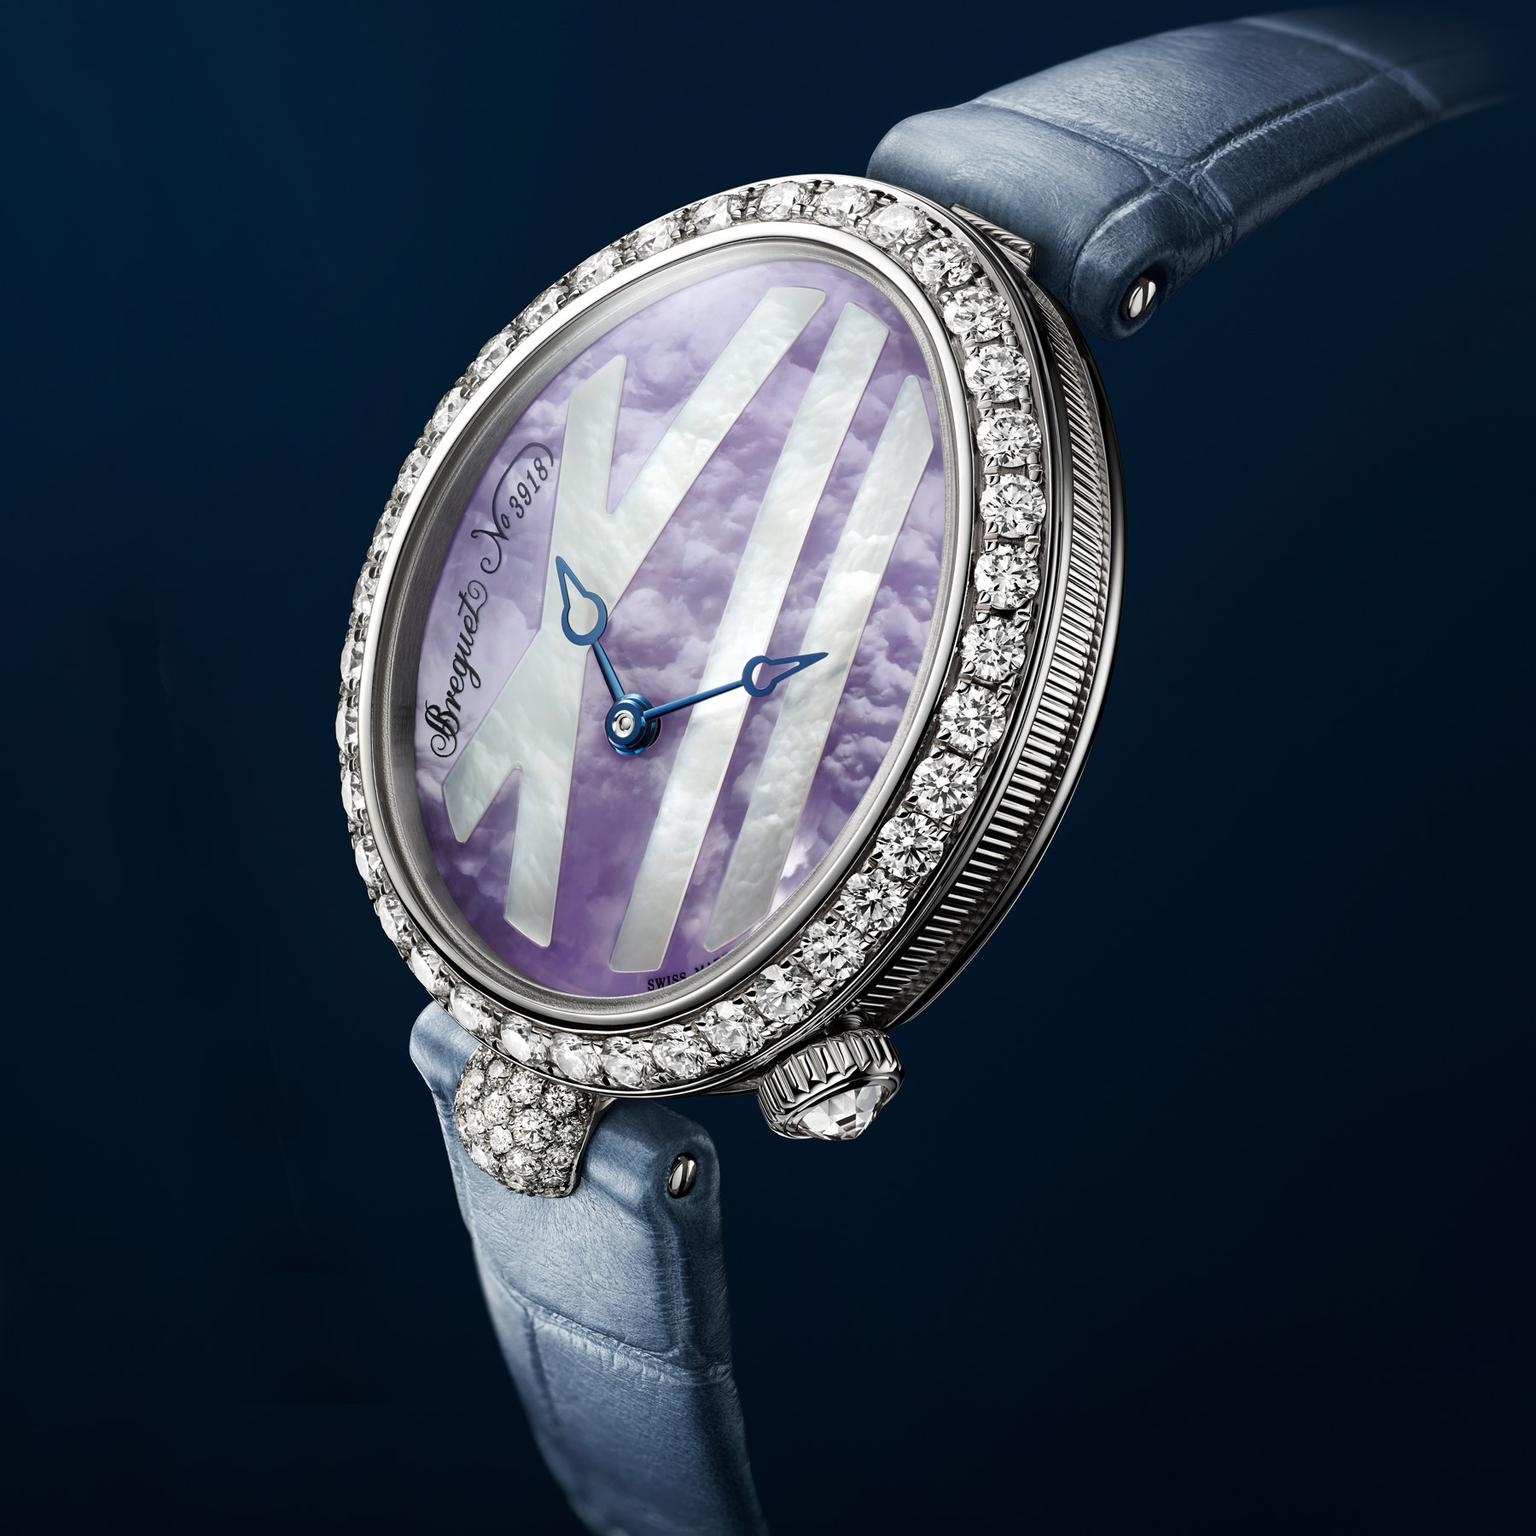 Breguet Reine de Naples Princesse Mini 9818 watch